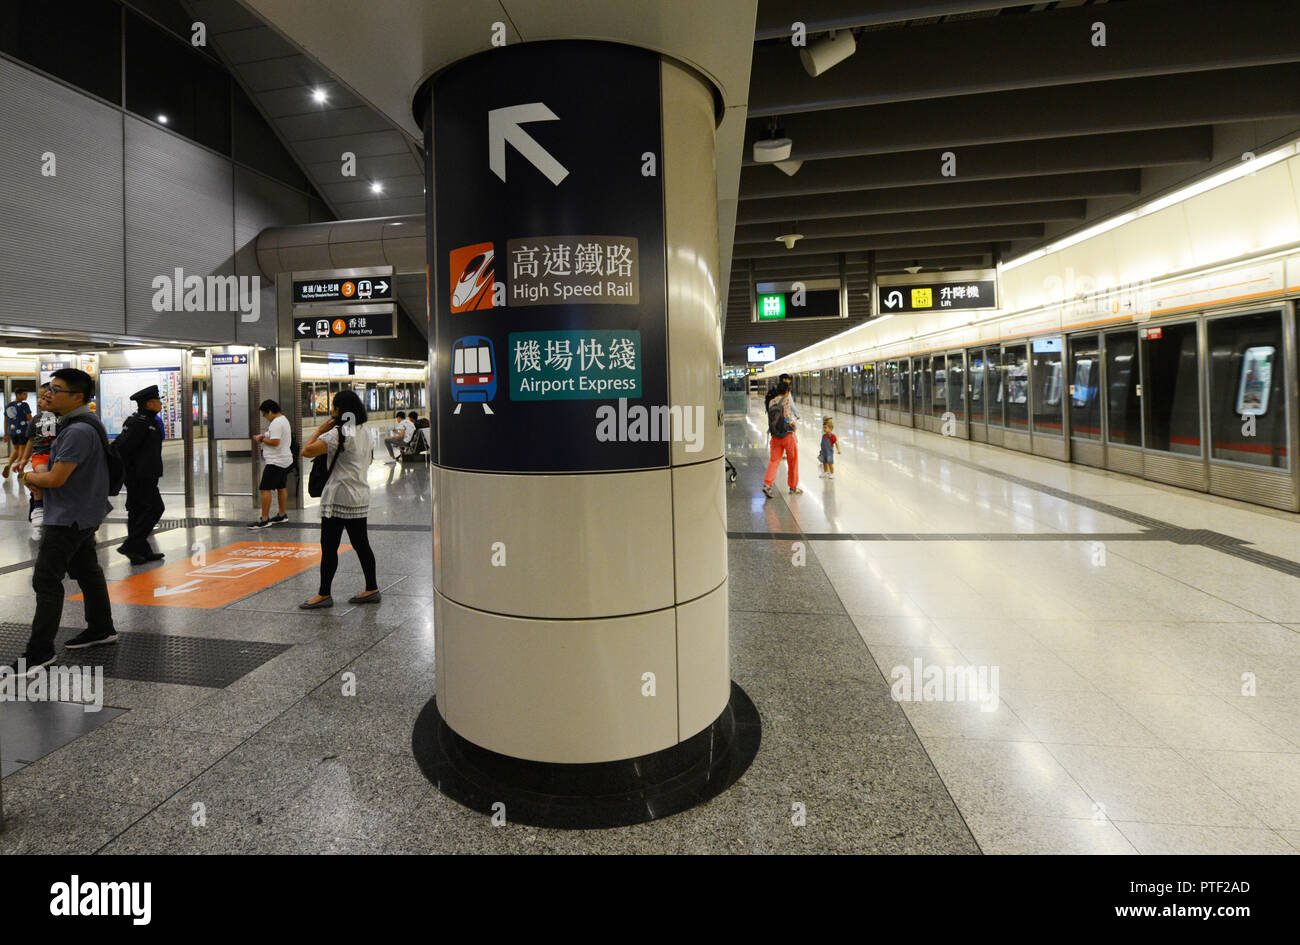 Passengers waiting for The Tung Chung line in Hong Kong station. - Stock Image